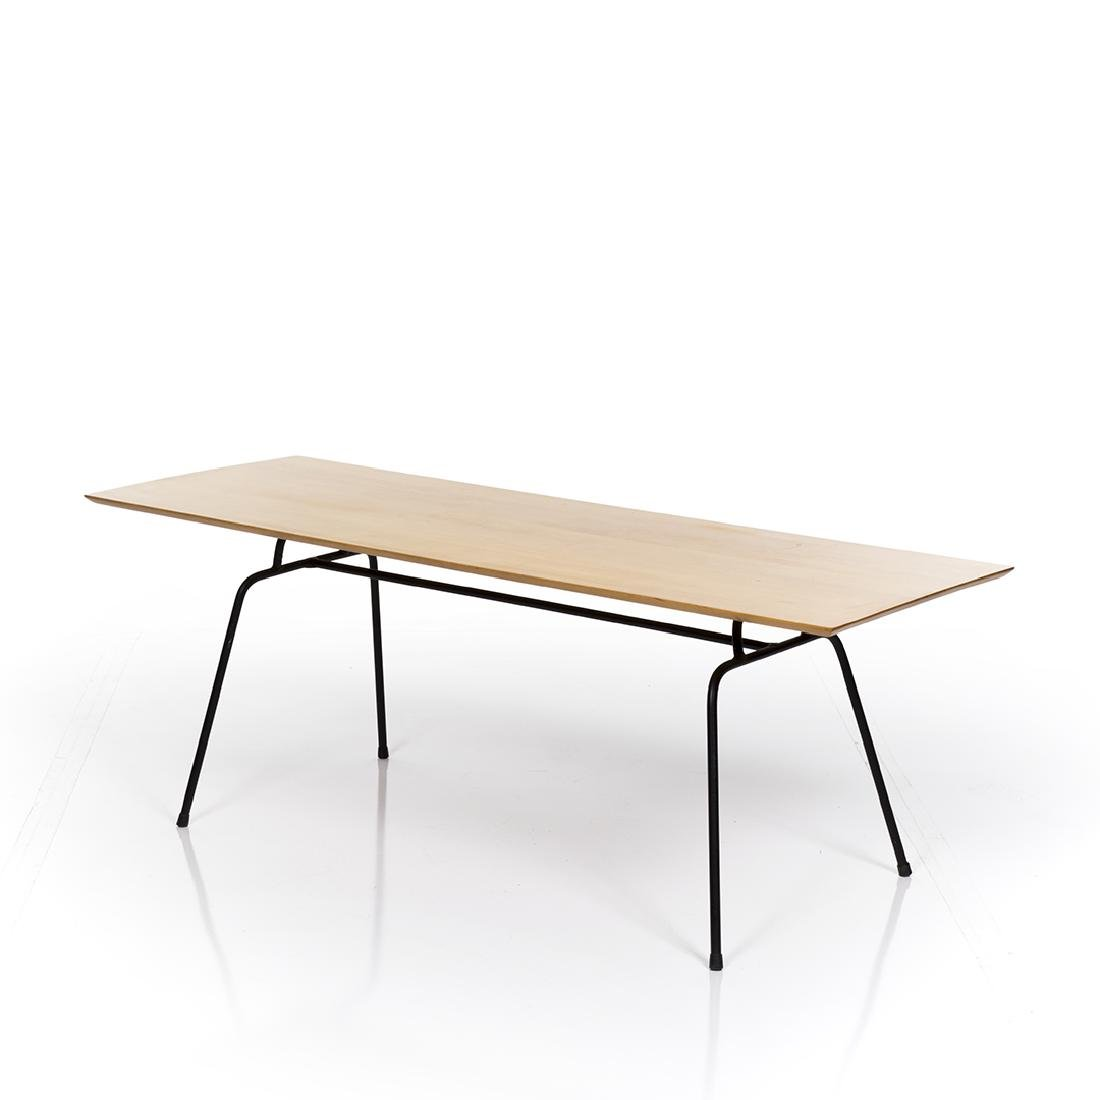 Paul McCobb Coffee Table - 2